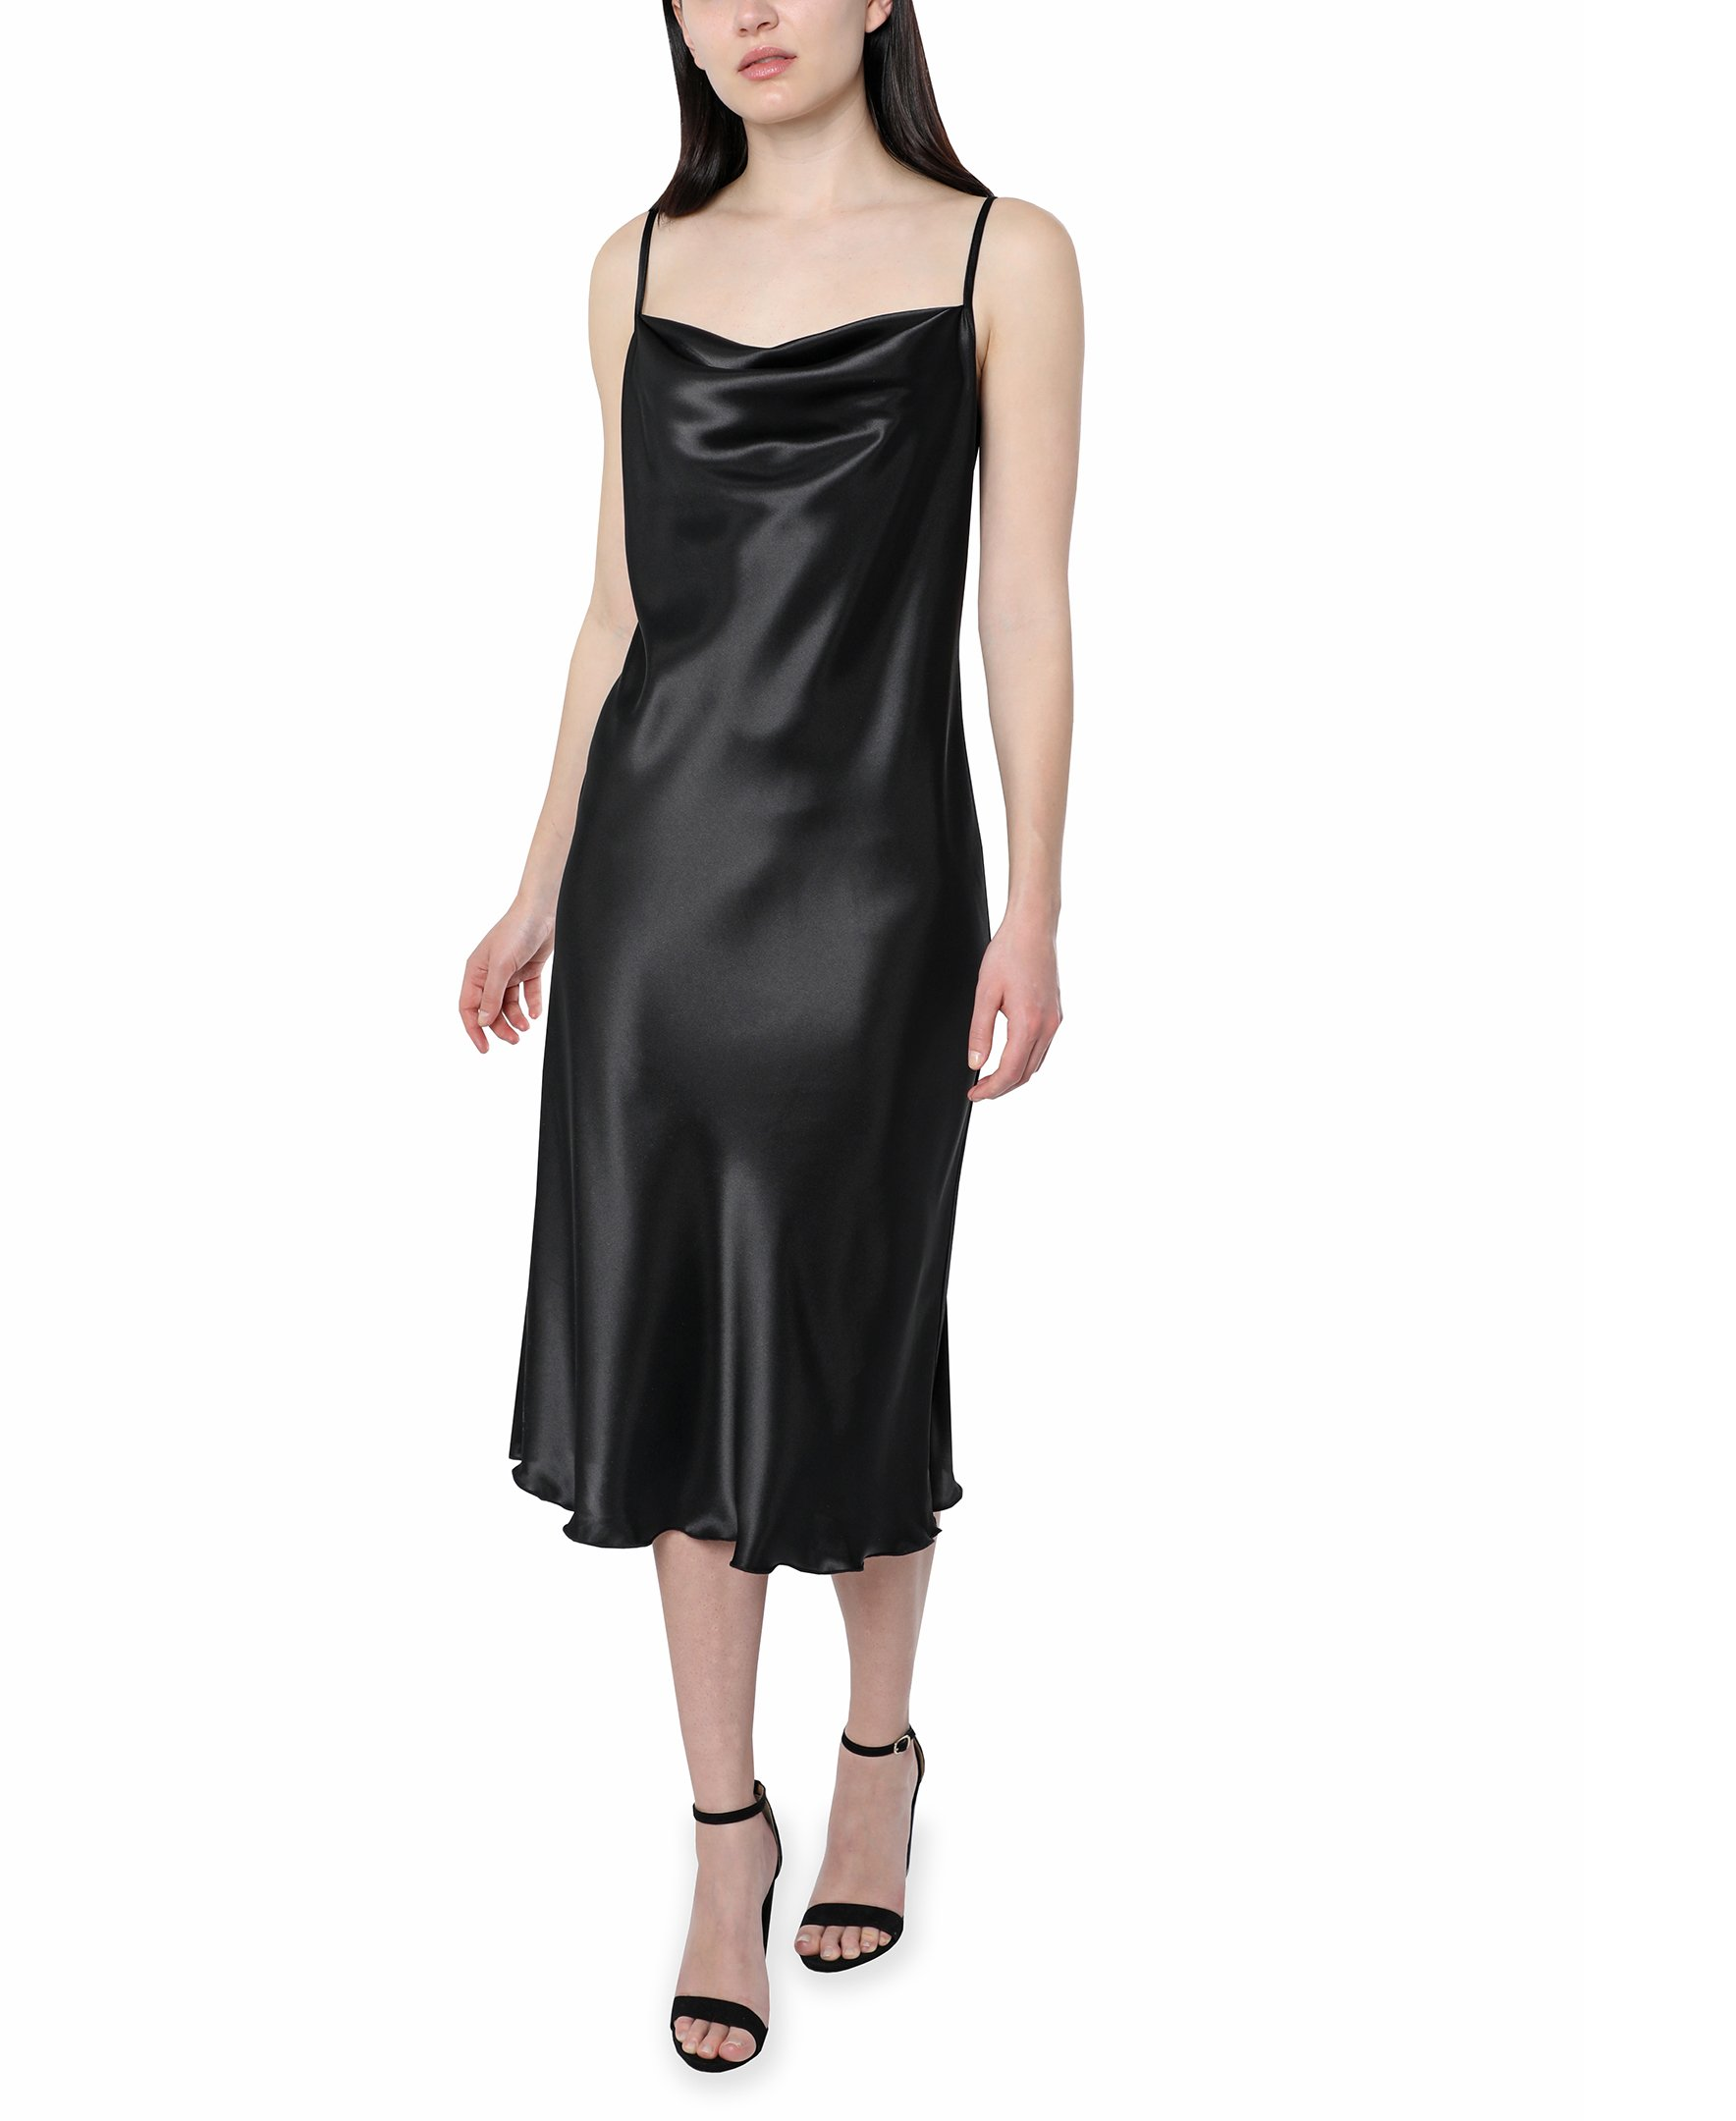 Bebe Satin Midi Dress -black - Front